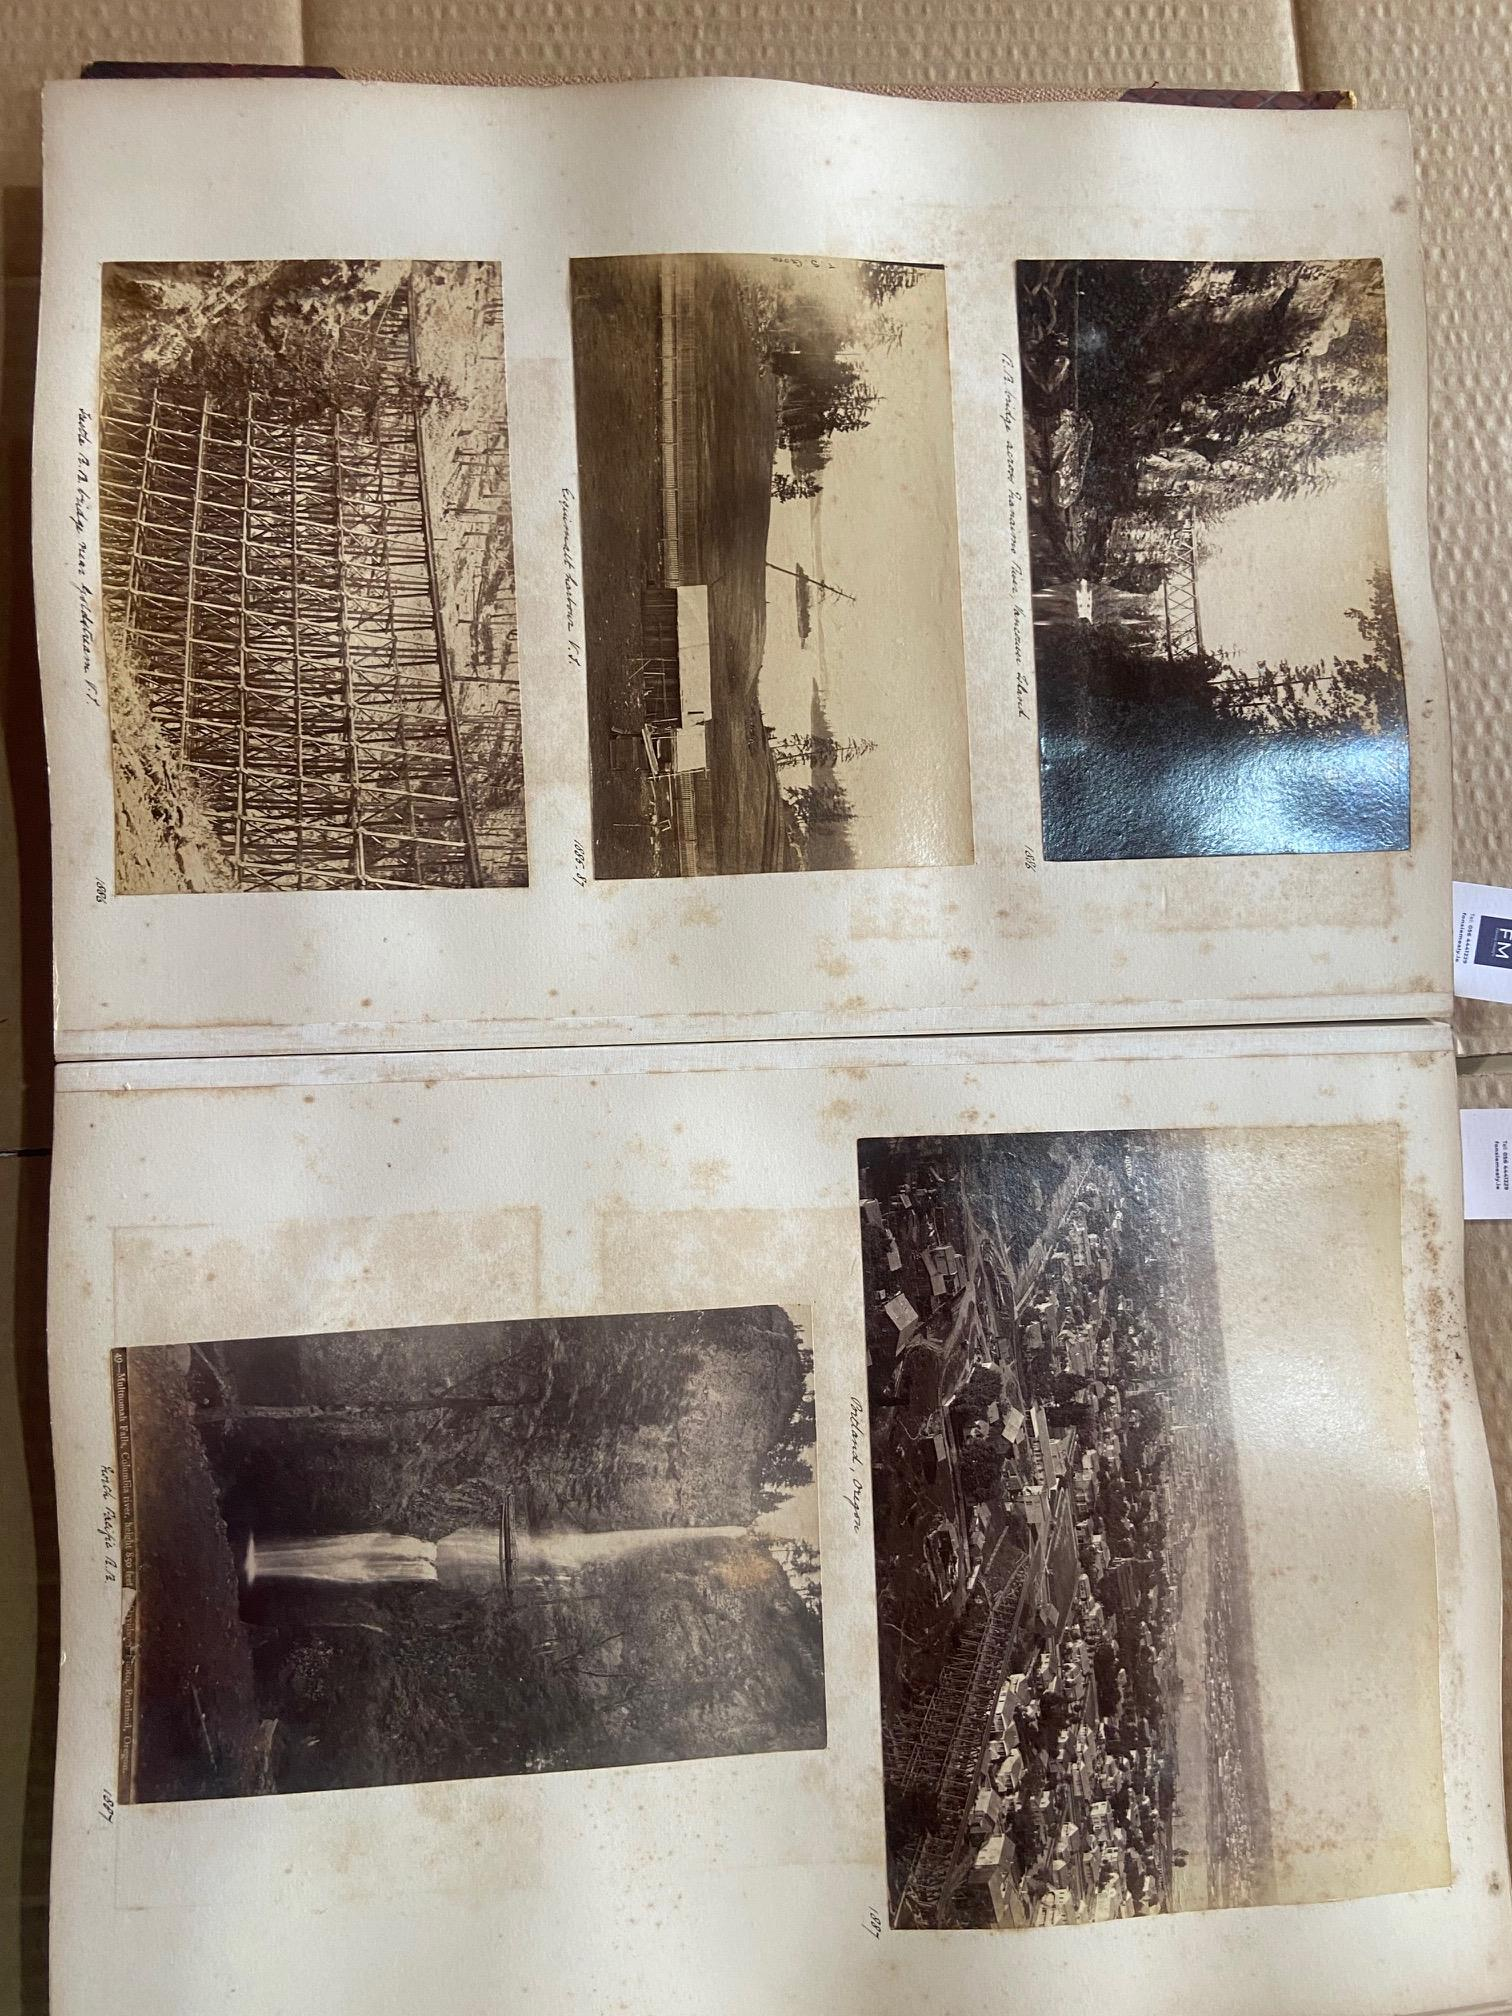 Photographs: Two large folio Albums of Photographs, each c. 1870 - 1890's. One Album contains - Image 17 of 31